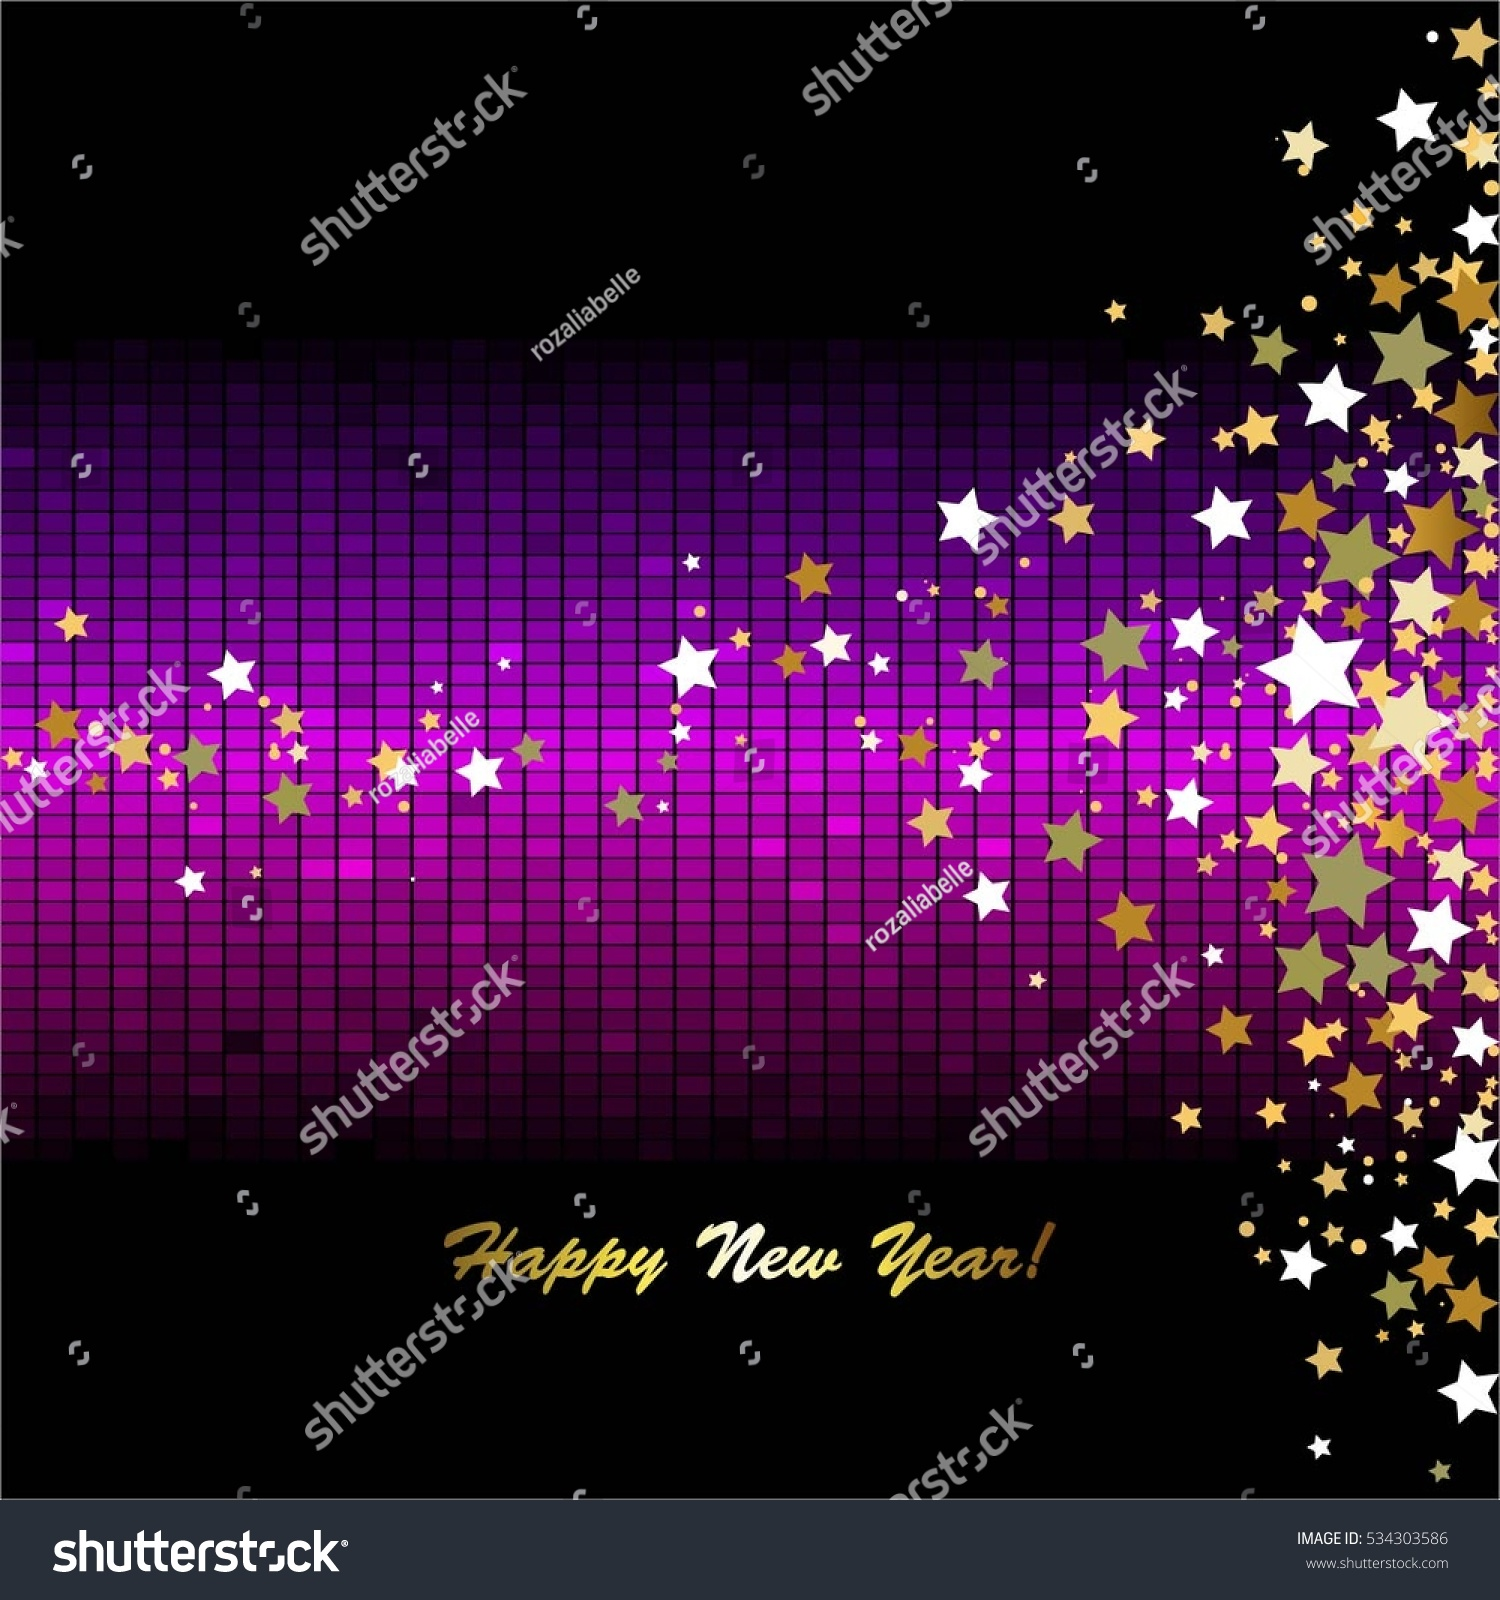 happy new year gold stars on a black purple abstract background